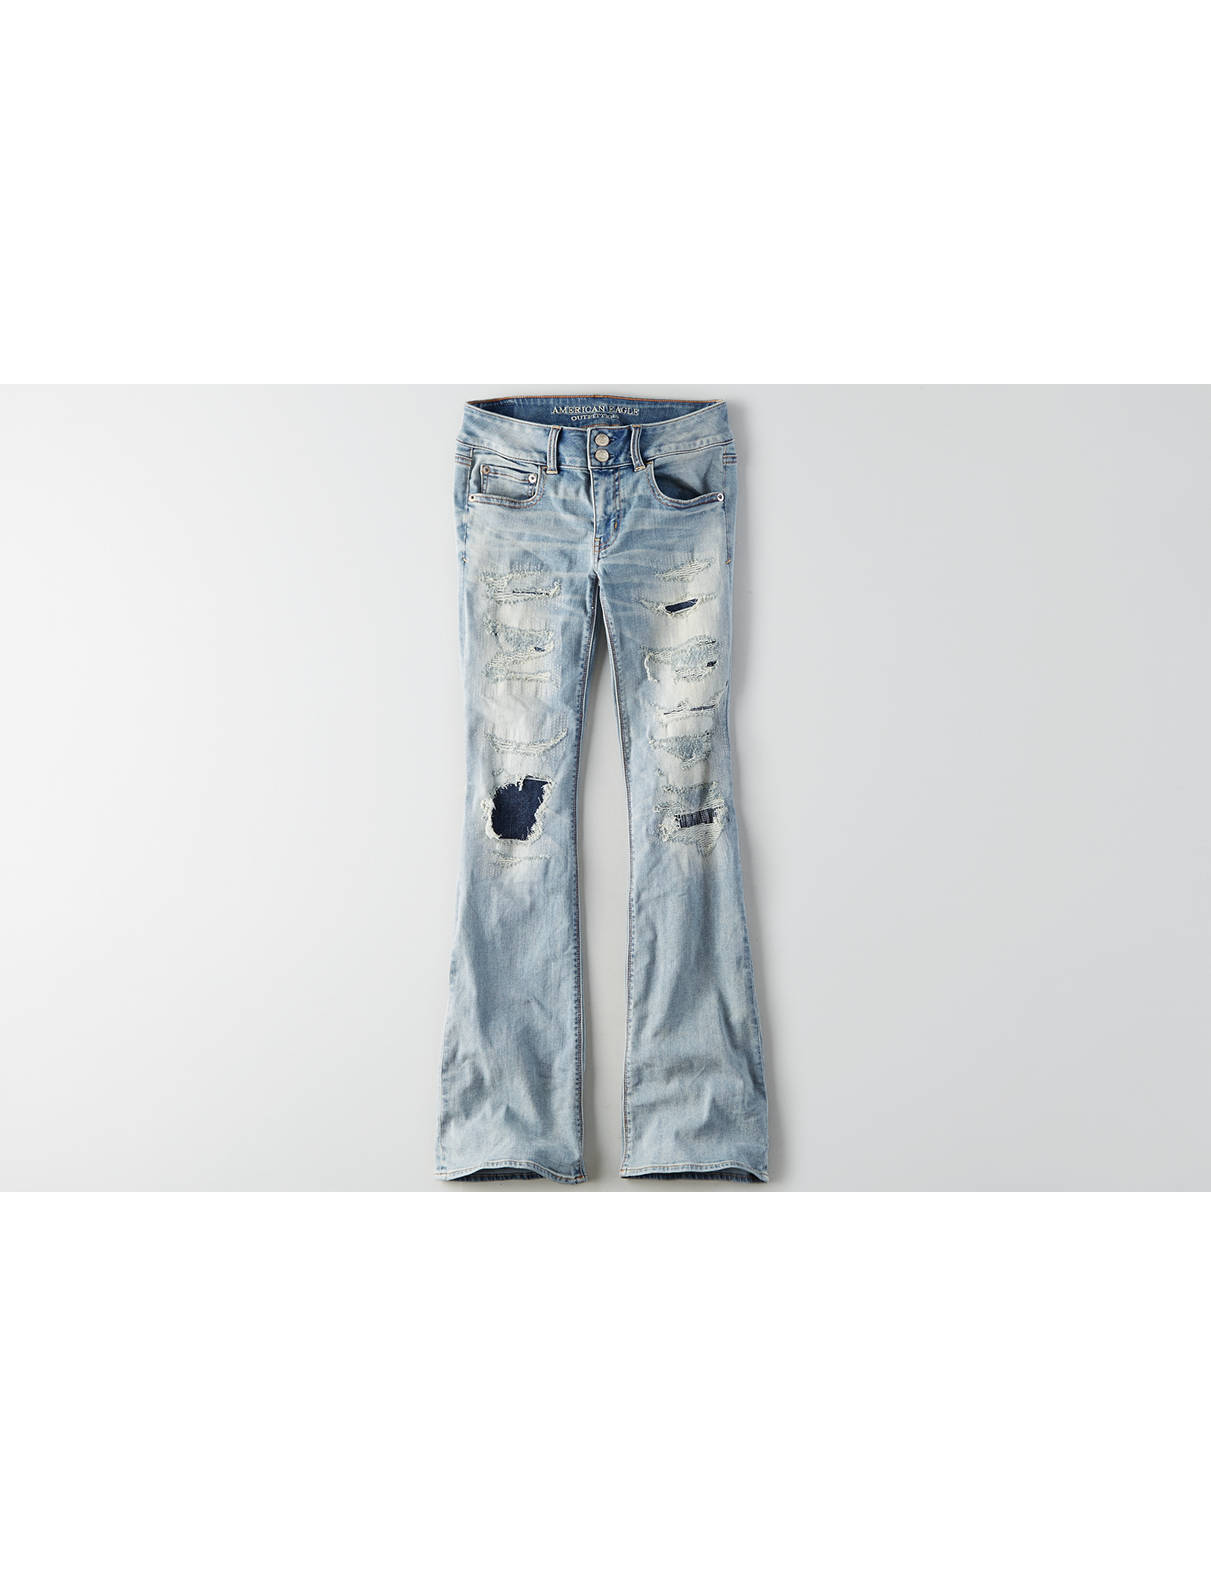 Flared Jeans: Artist Jeans for Women | American Eagle Outfitters